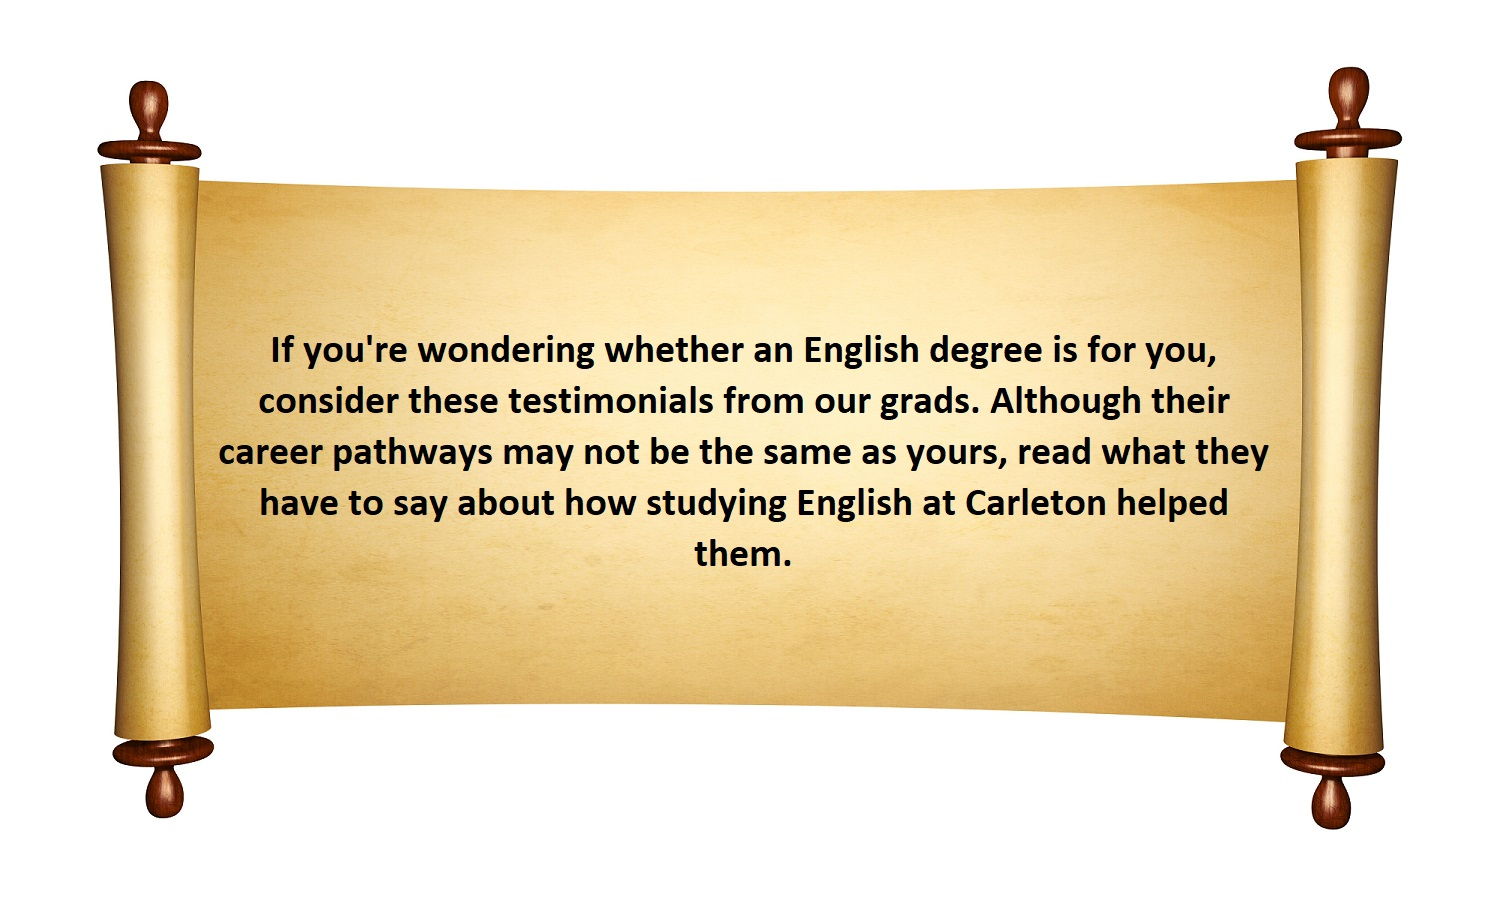 If you're wondering whether an English degree is for you, consider these testimonials from our grads. Although their career pathways may not be the same as yours, read what they have to say about how studying English at Carleton helped them.